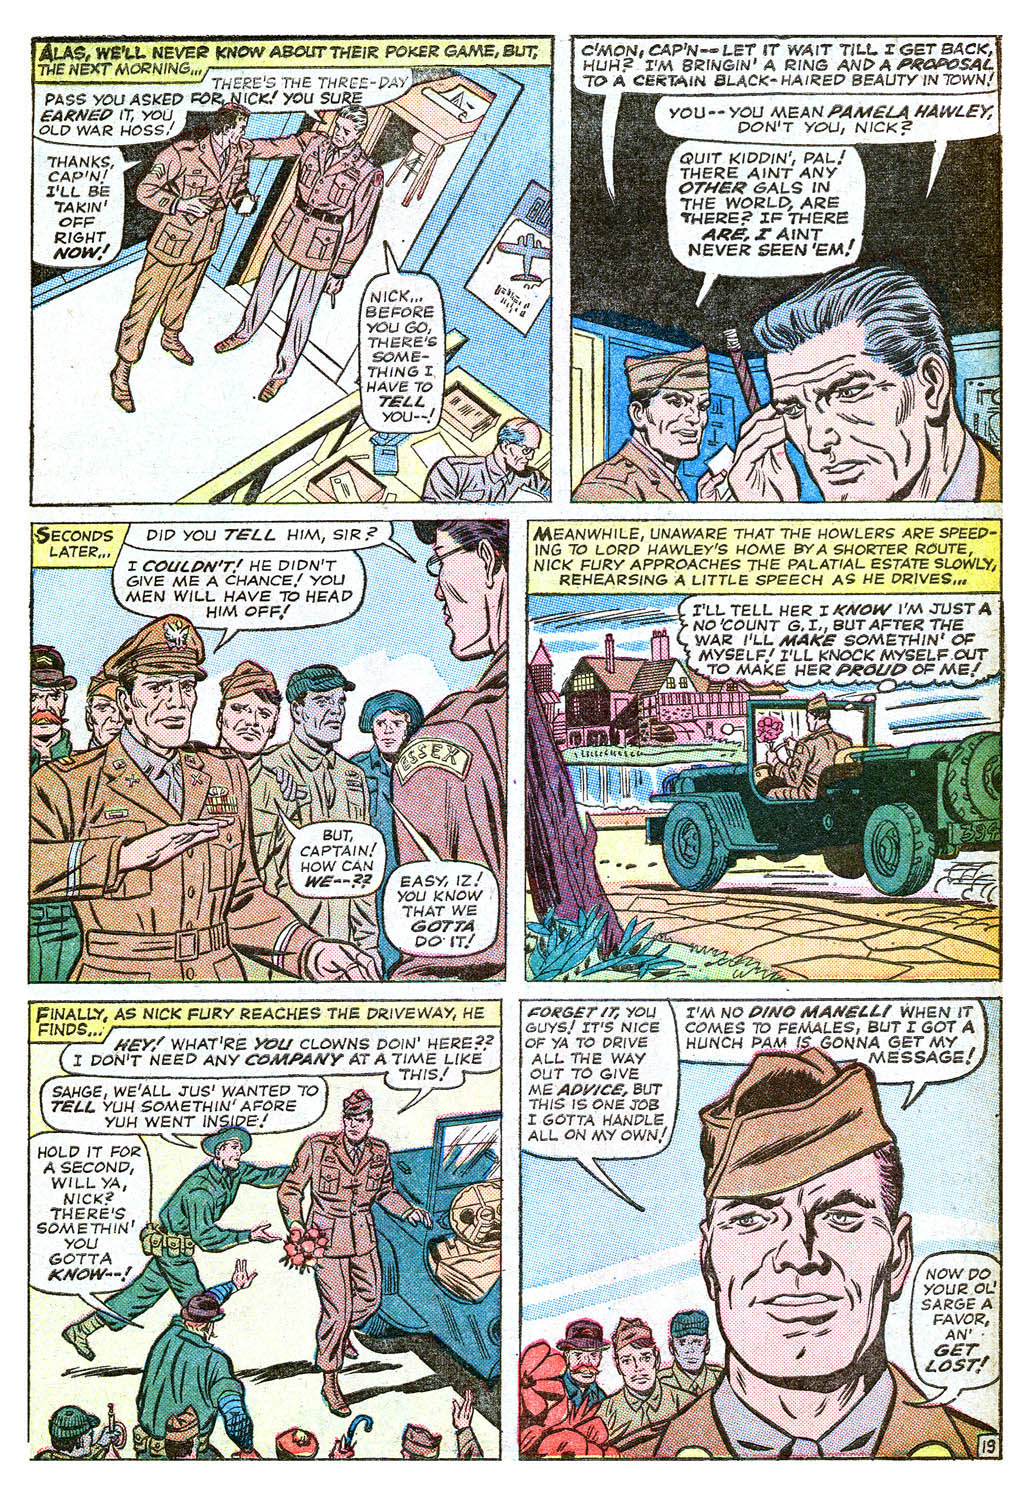 Read online Sgt. Fury comic -  Issue #18 - 27